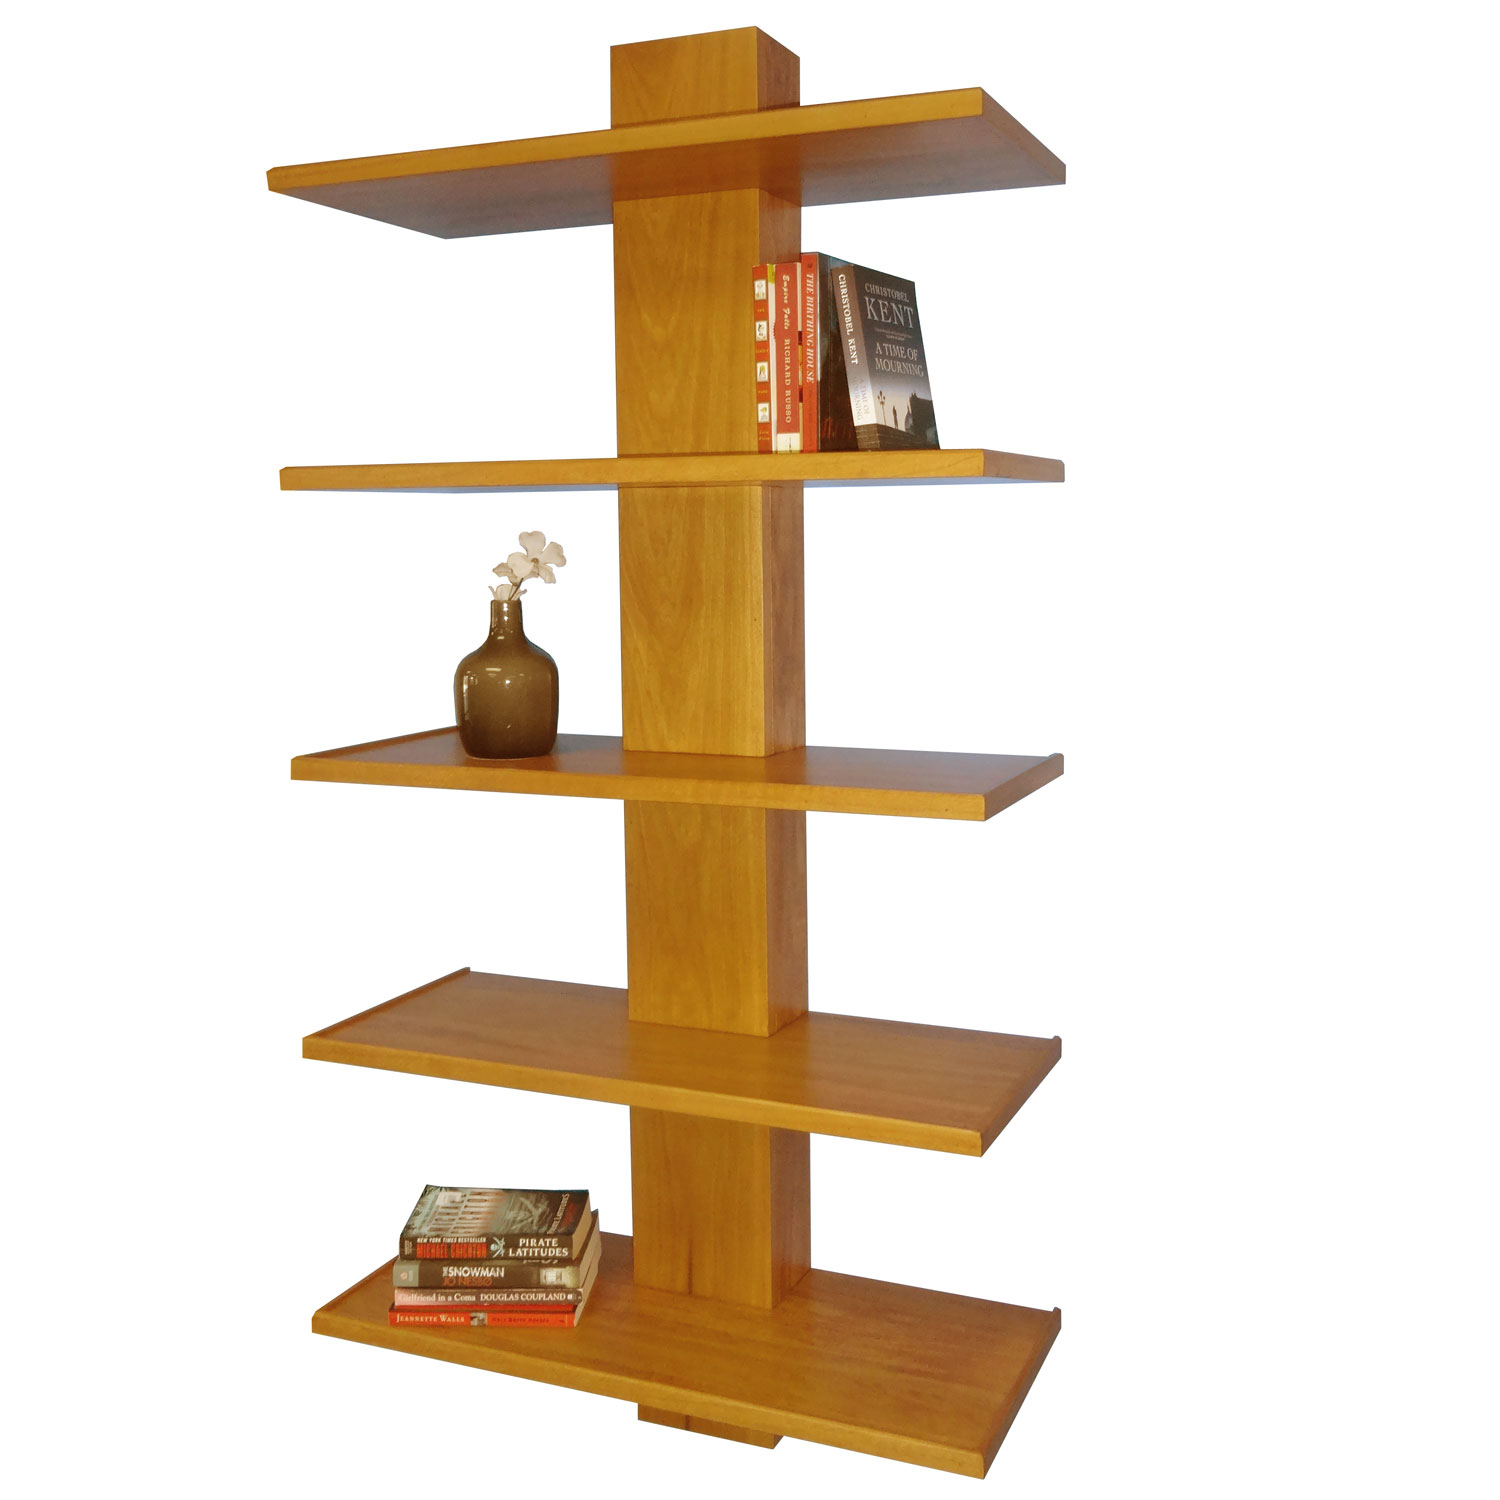 steel chair in guwahati banquet covers ebay wall mounted solid wood bookshelf by clean line designs